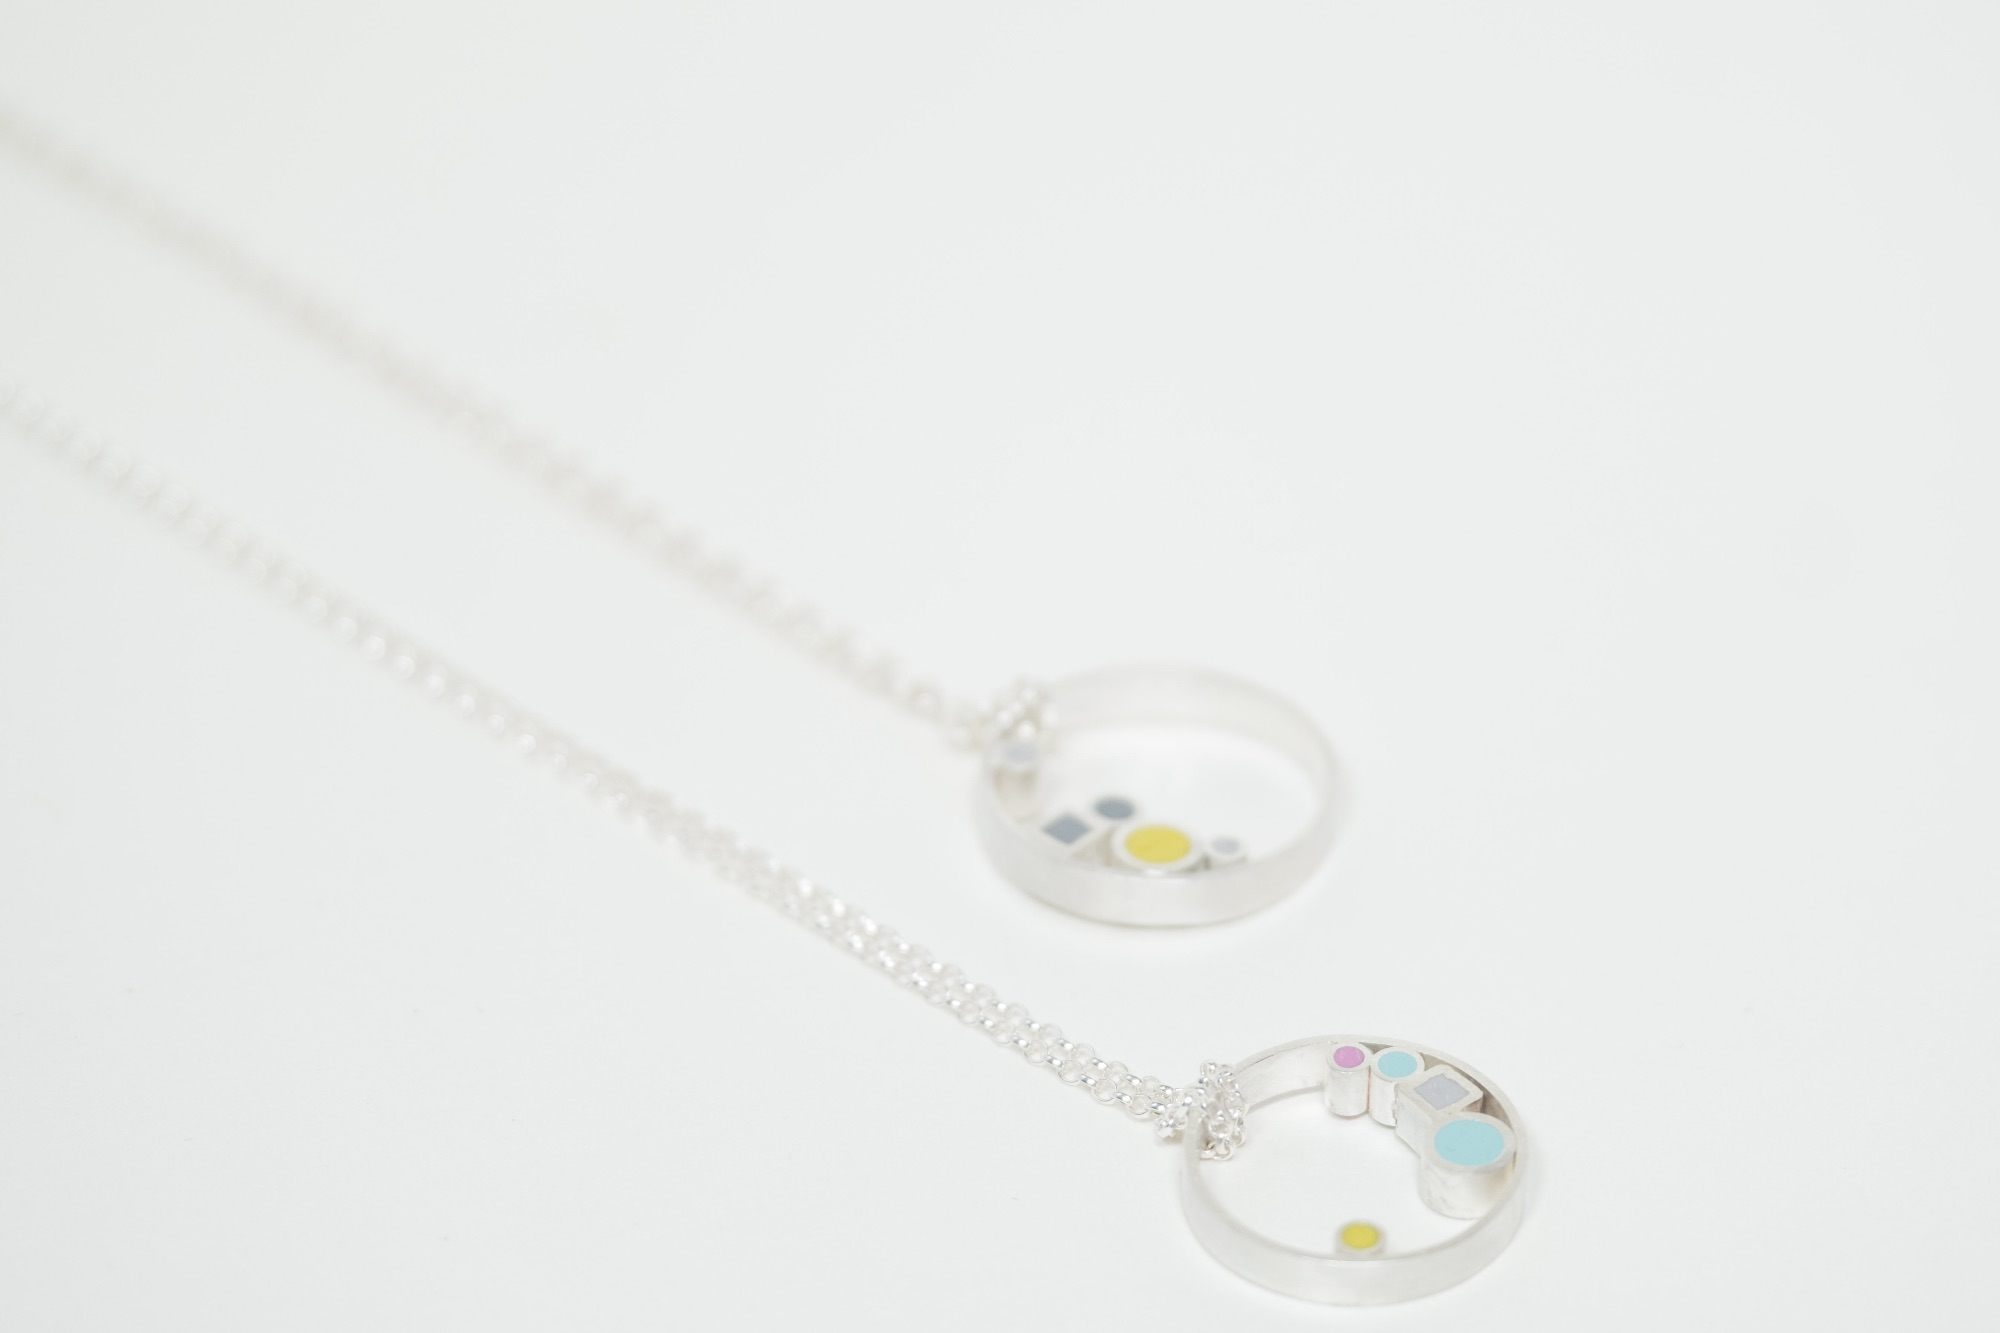 Inside Dot Sterling silver  Pendant Necklaces by Colour Designs Jewellery